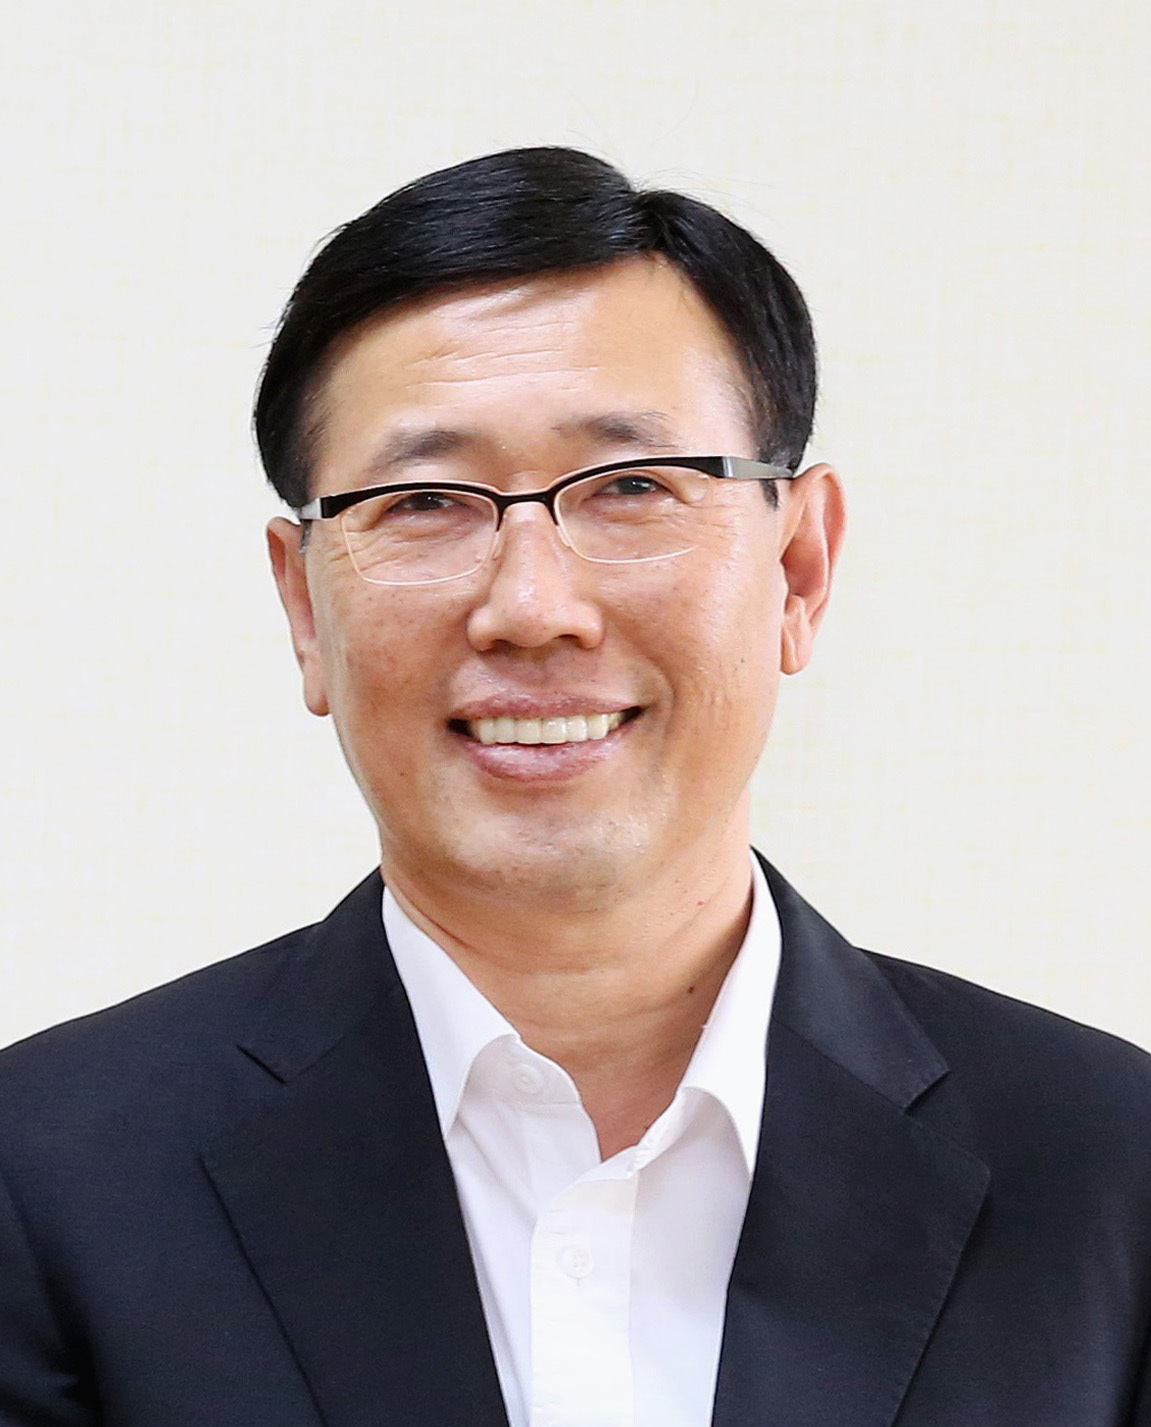 Asiana Airlines' newly appointed CEO Jung Sung- (Asiana Airlines)